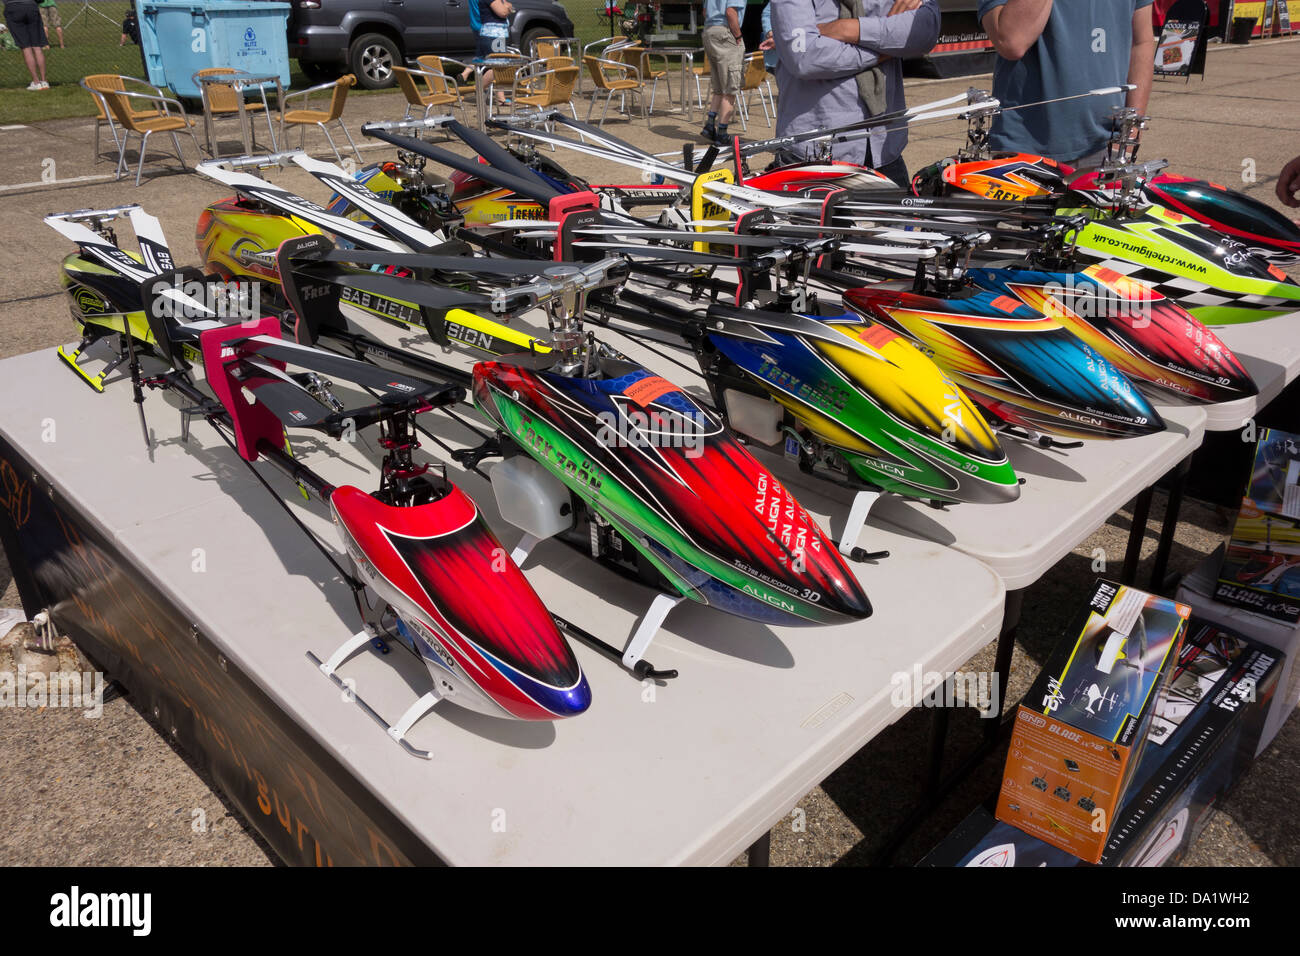 Model helicopters on display at Wings and wheels North Weald Essex - Stock Image